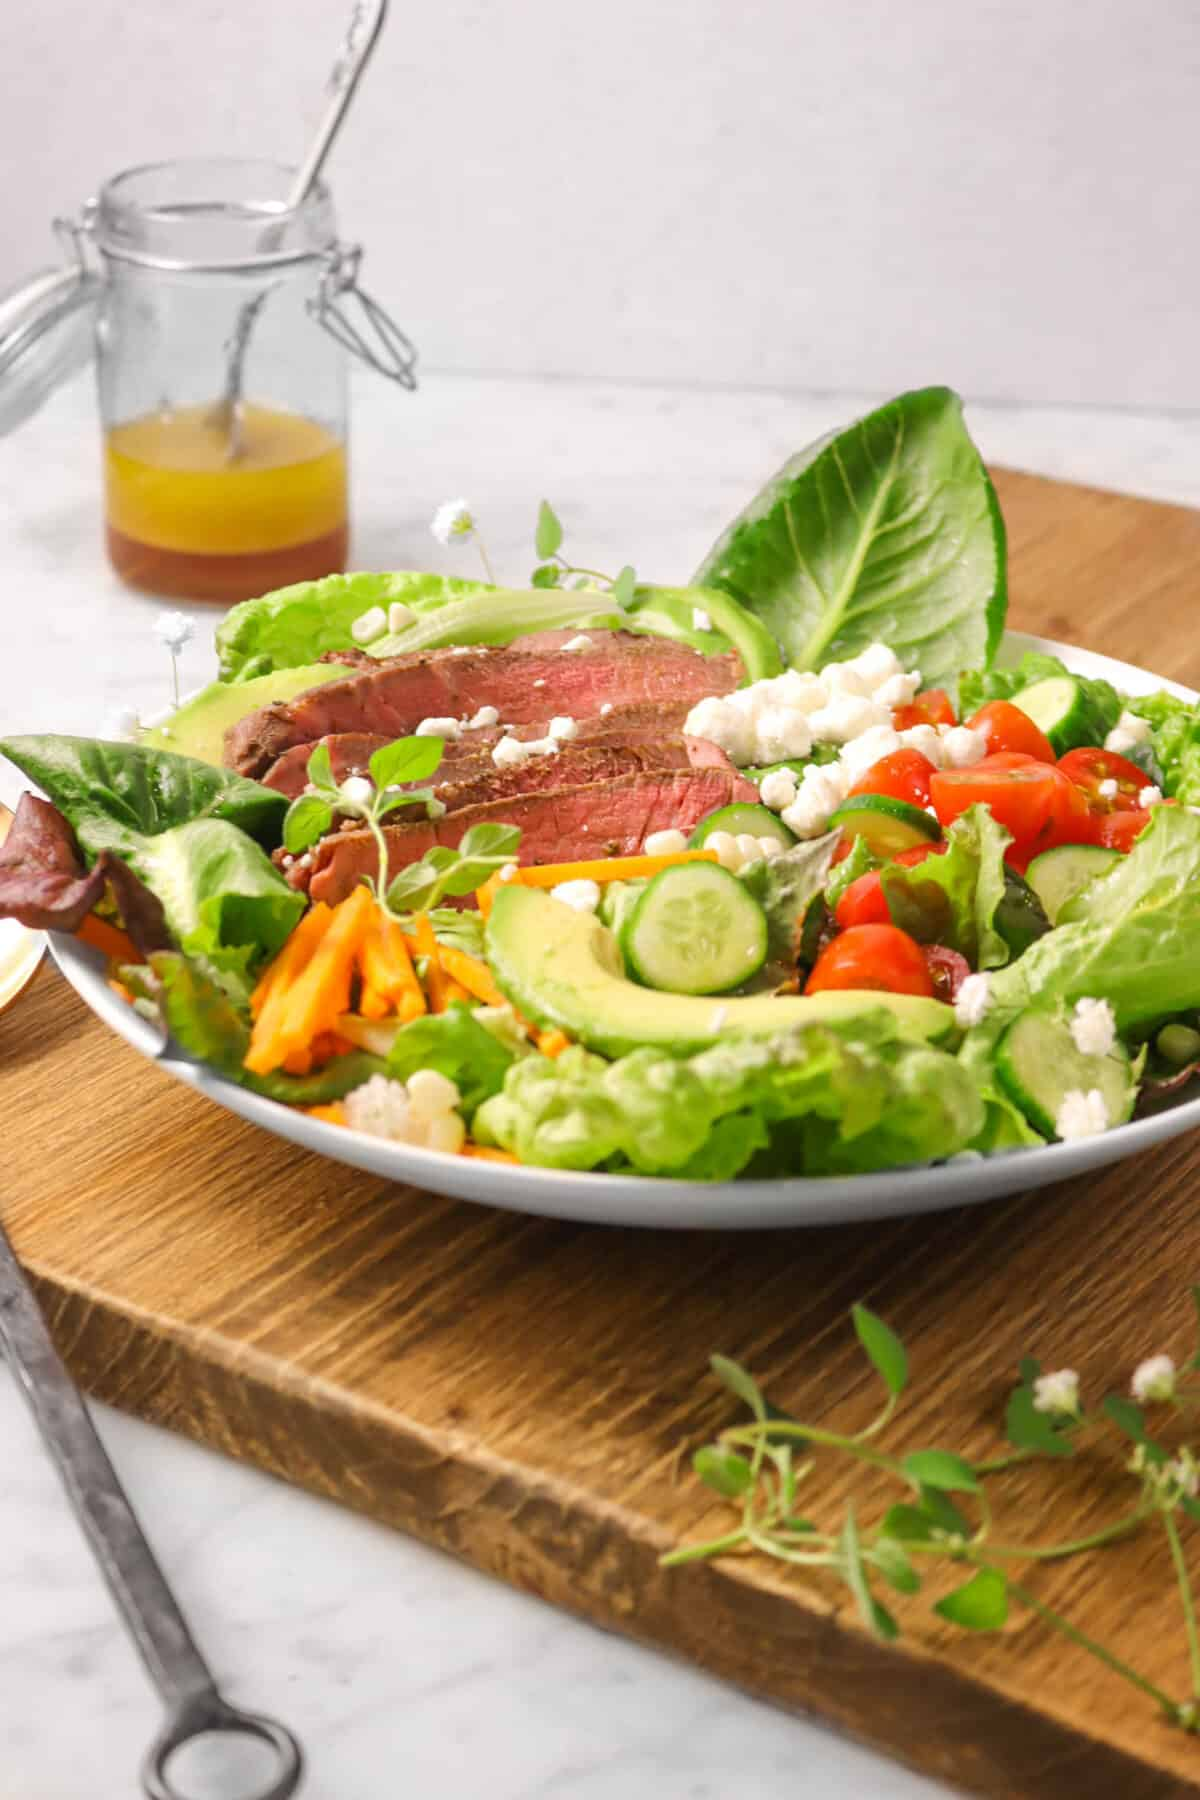 steak salad on a wood board with fresh herbs and a jar of red wine vinaigrette